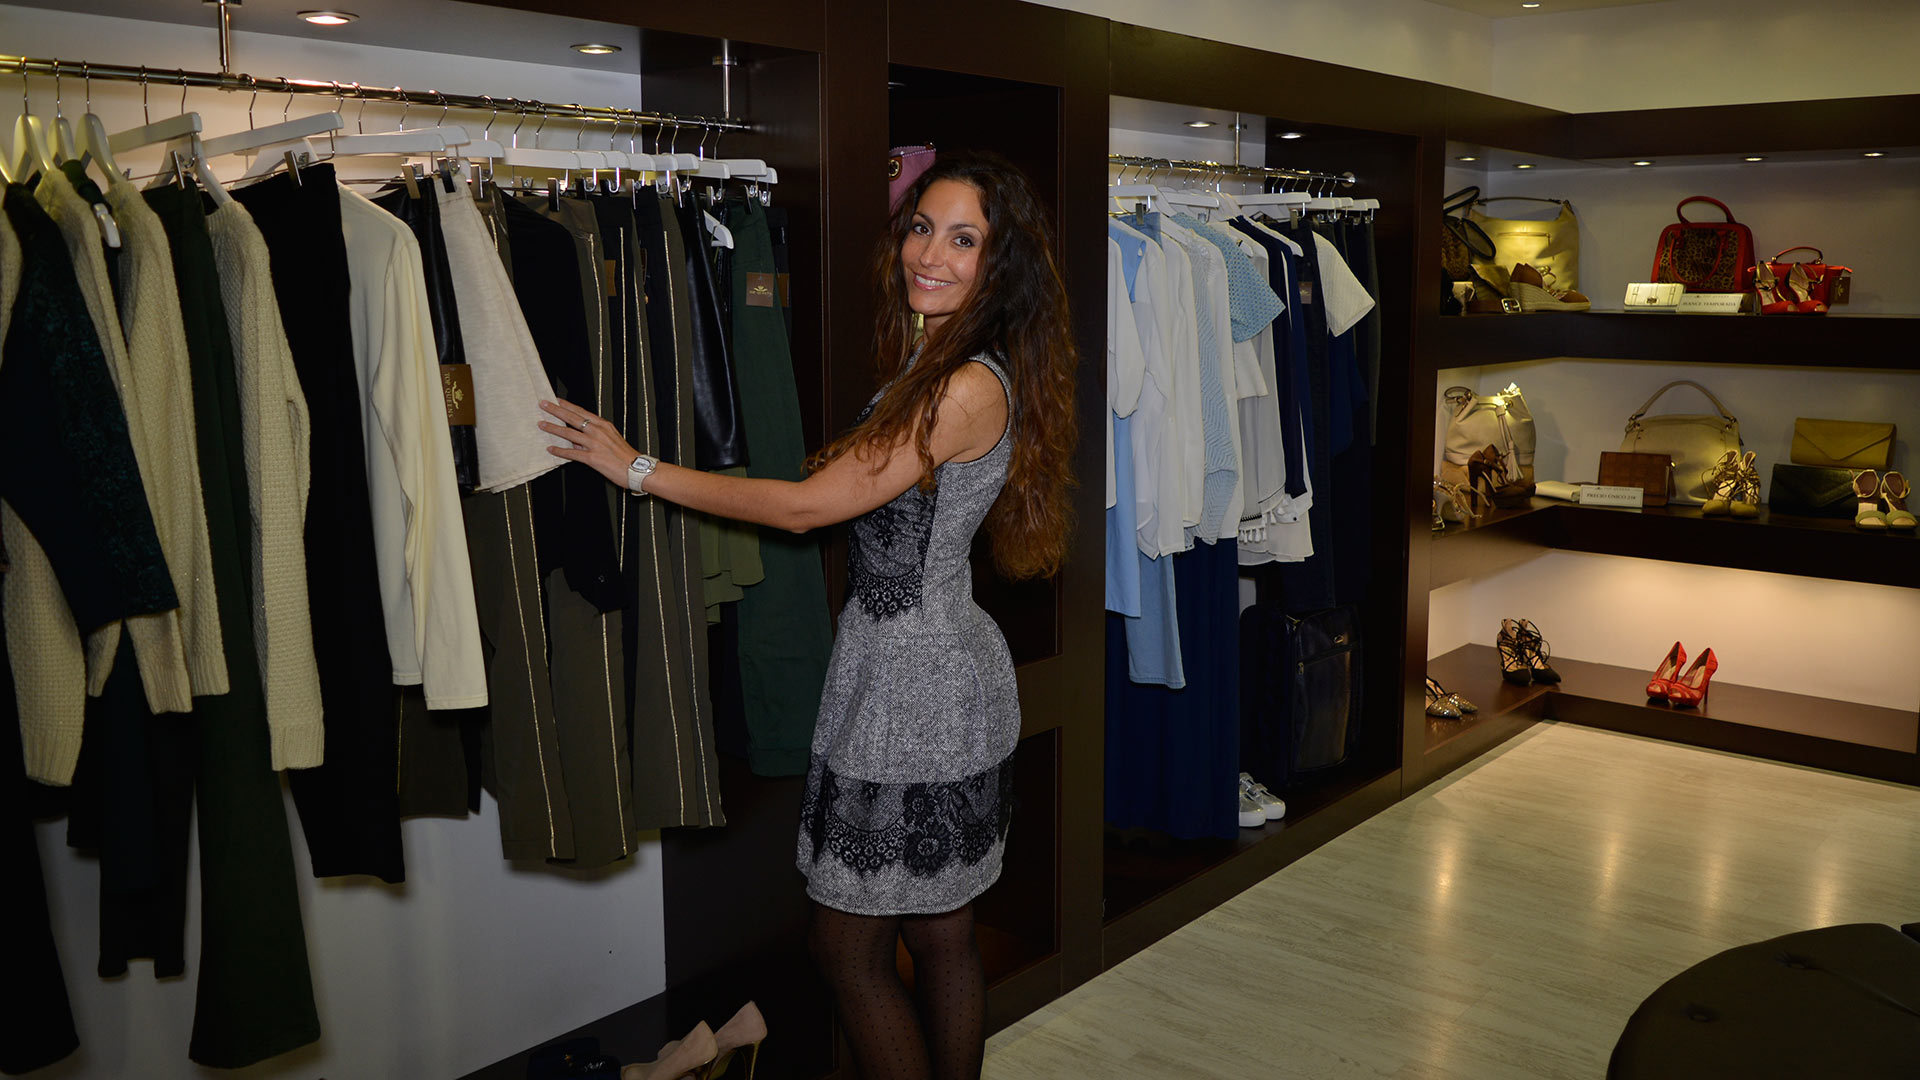 Ariana Style & Image Consultant www.arianasoffici.com